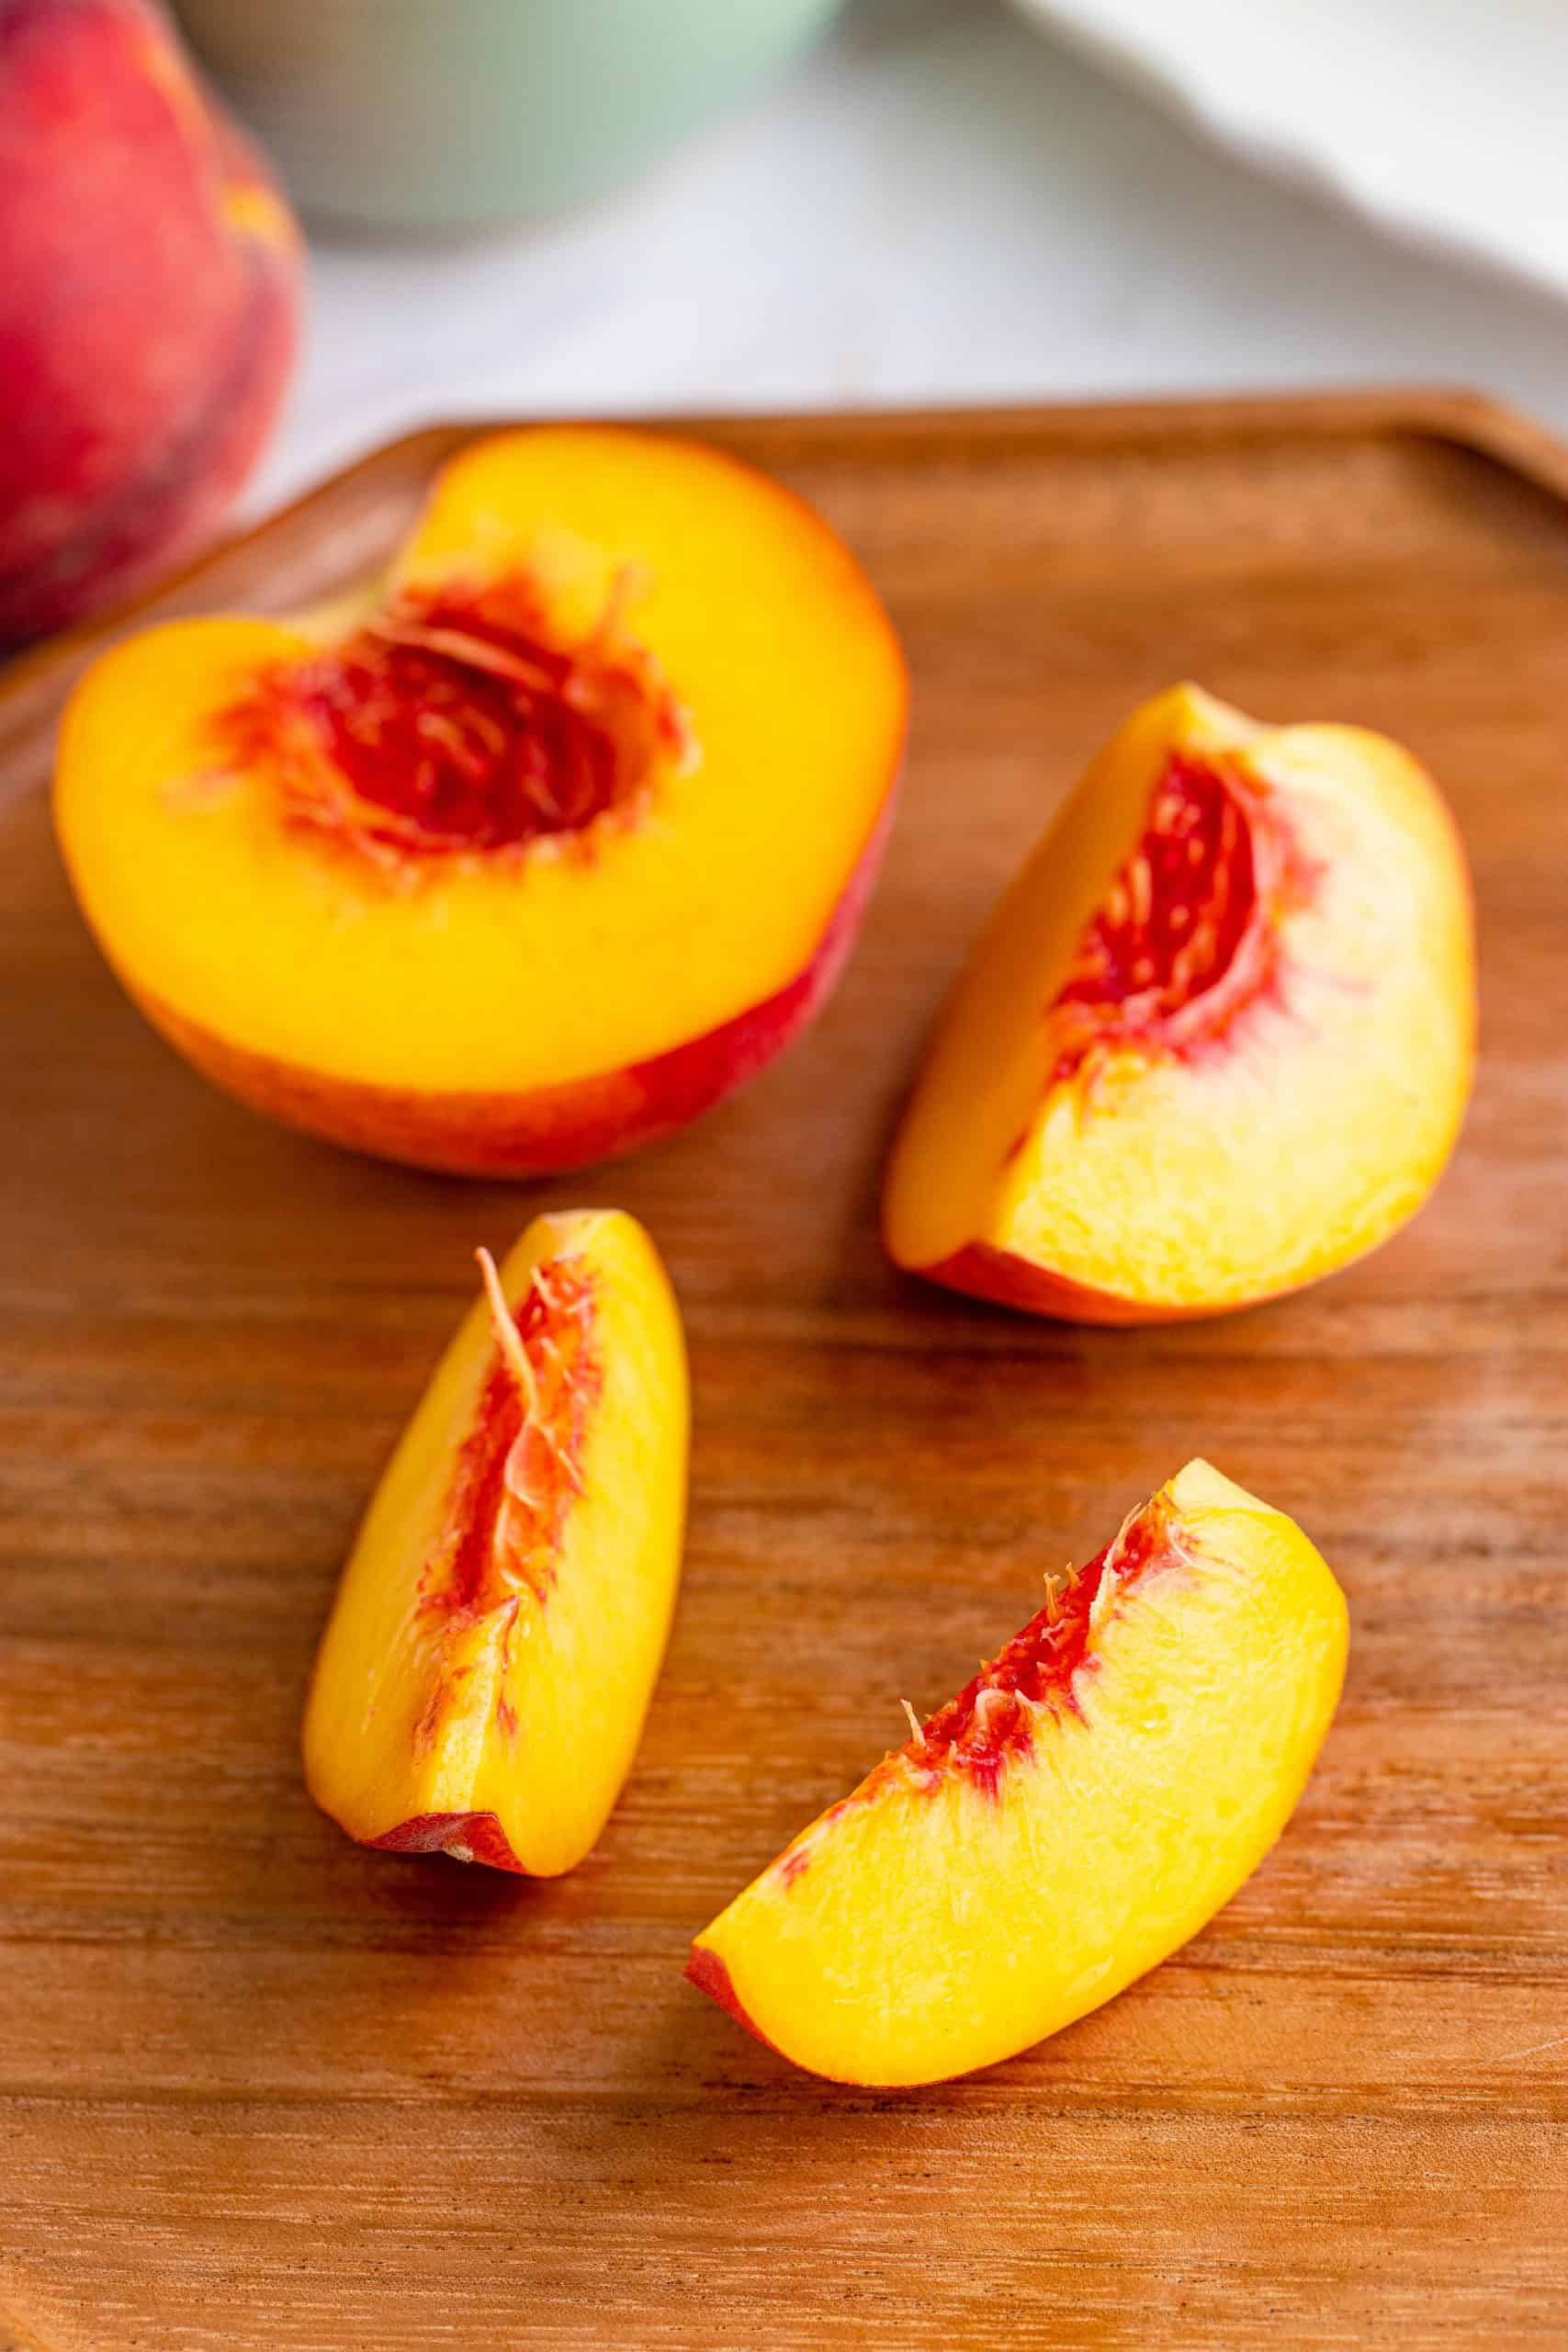 Peaches being sliced.